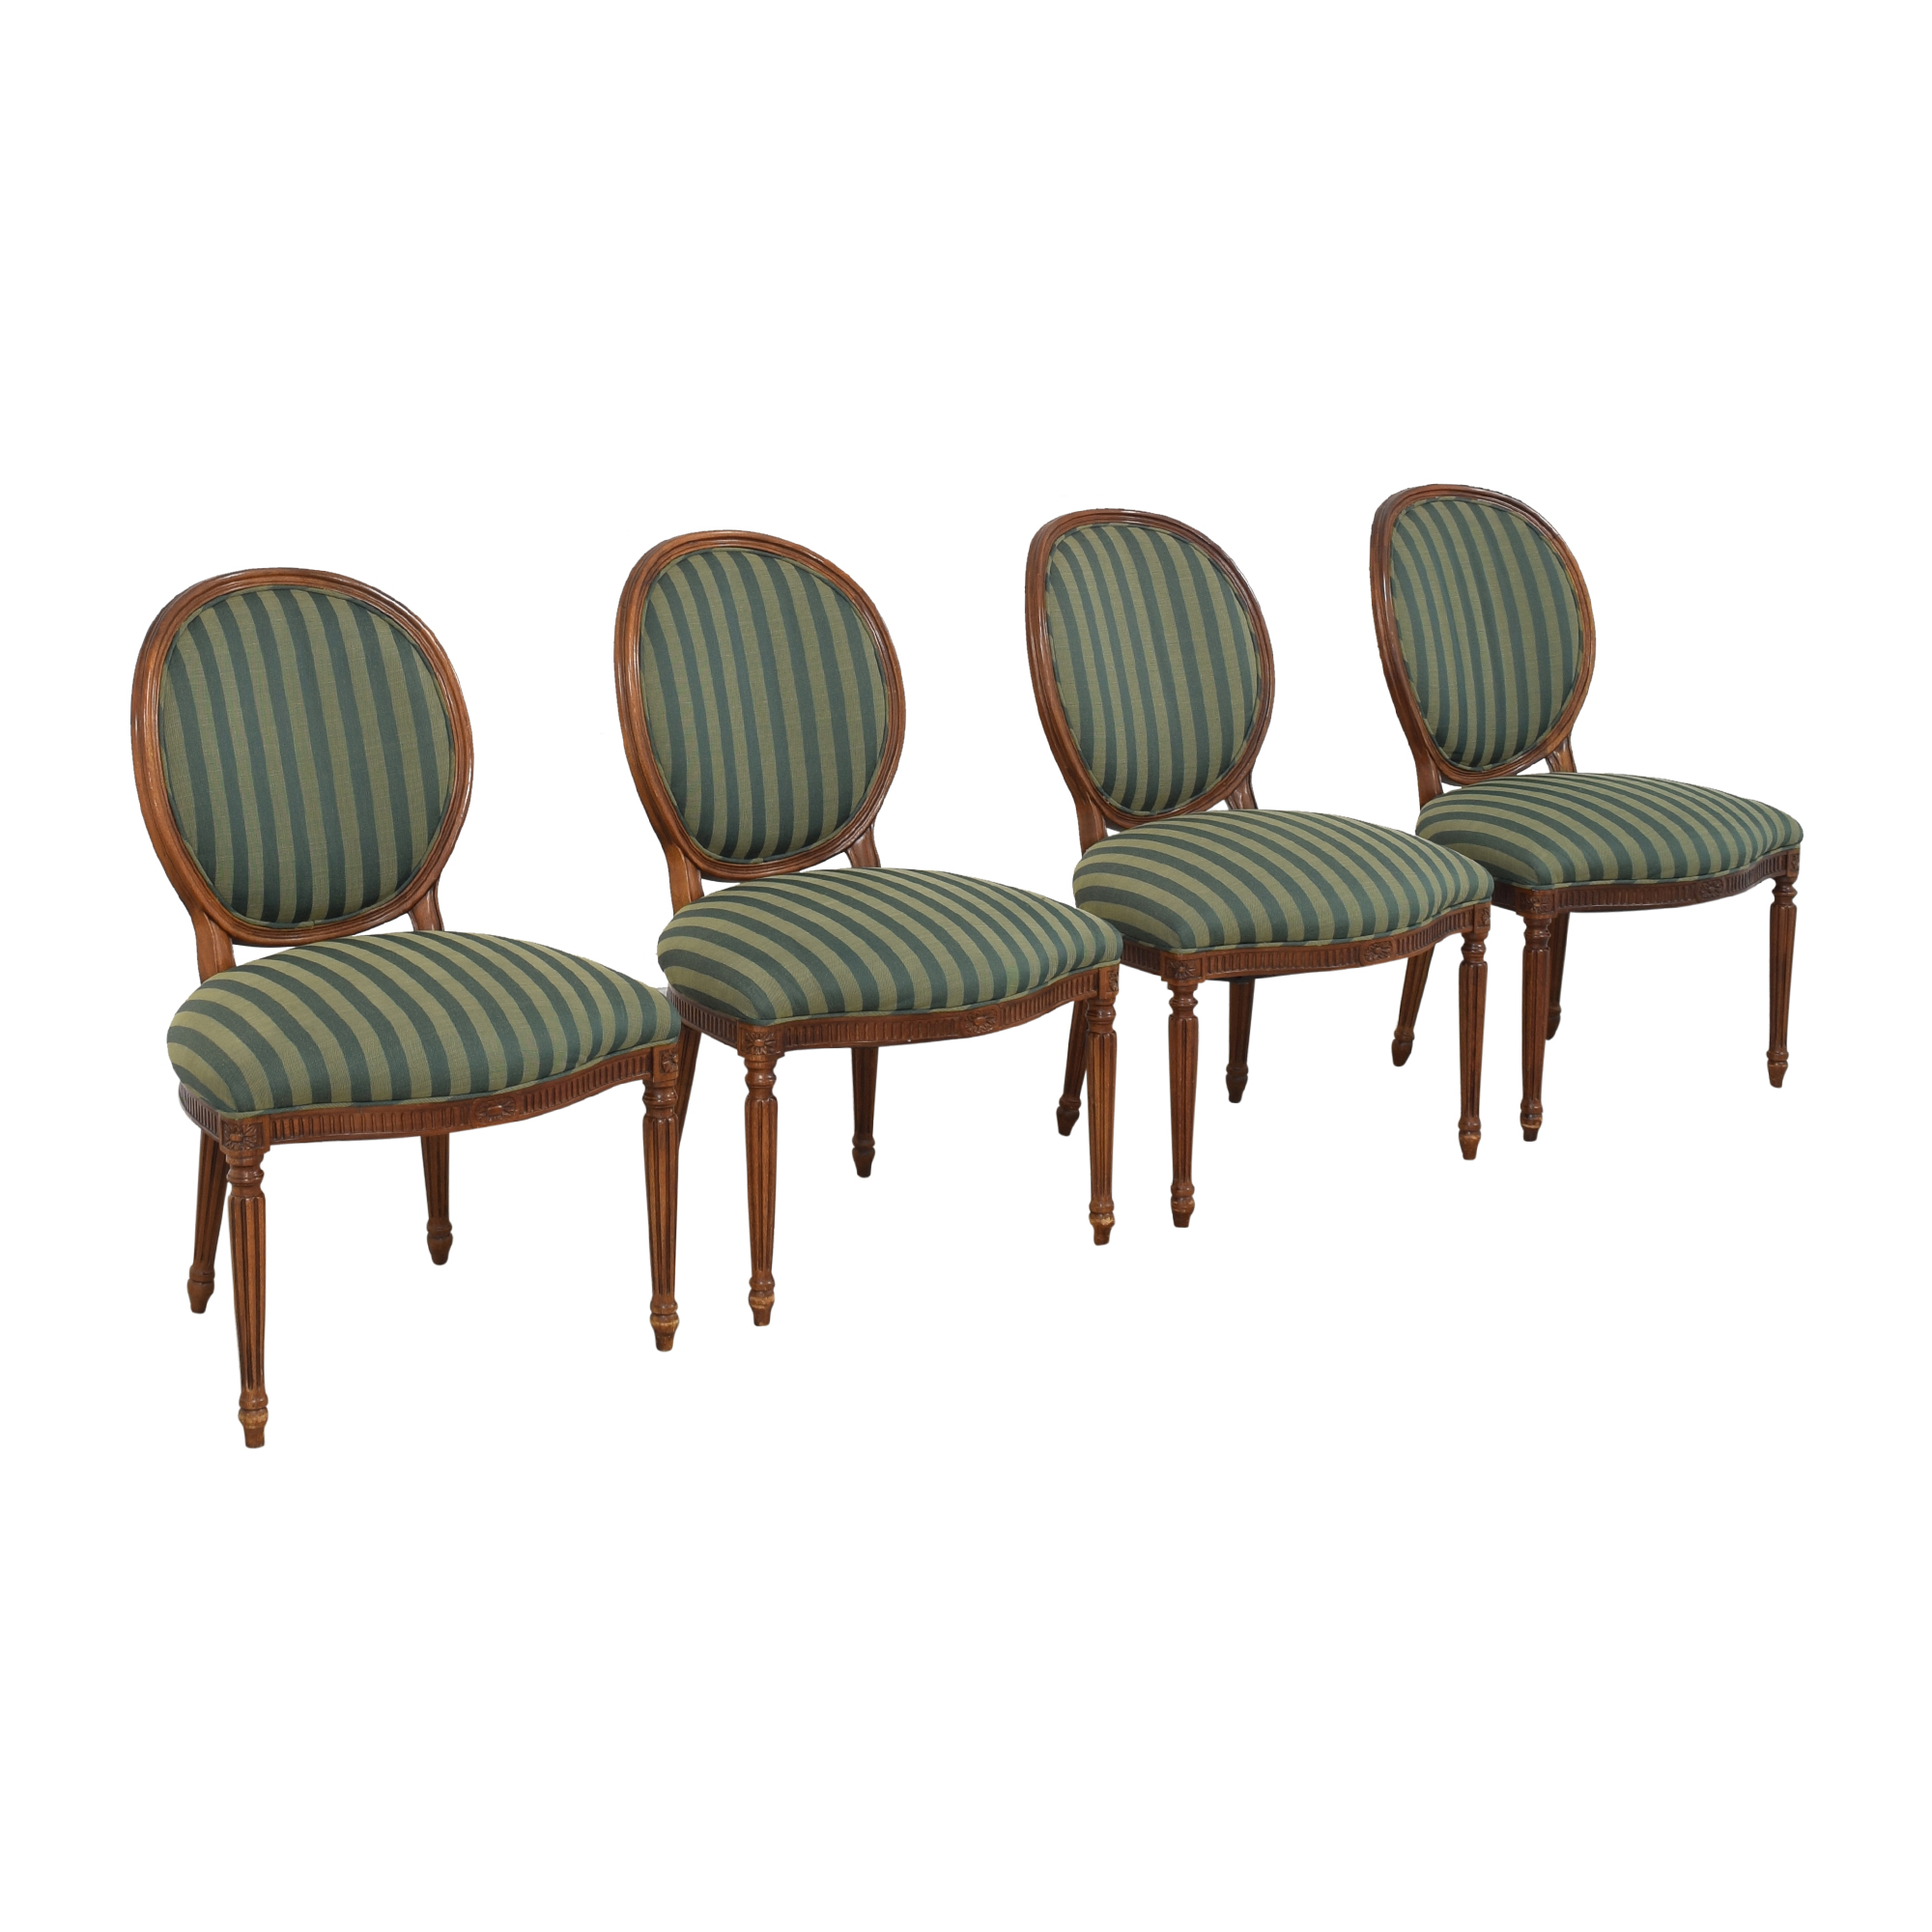 Hickory Chair Hickory Chair Medallion Back Dining Chairs green & brown